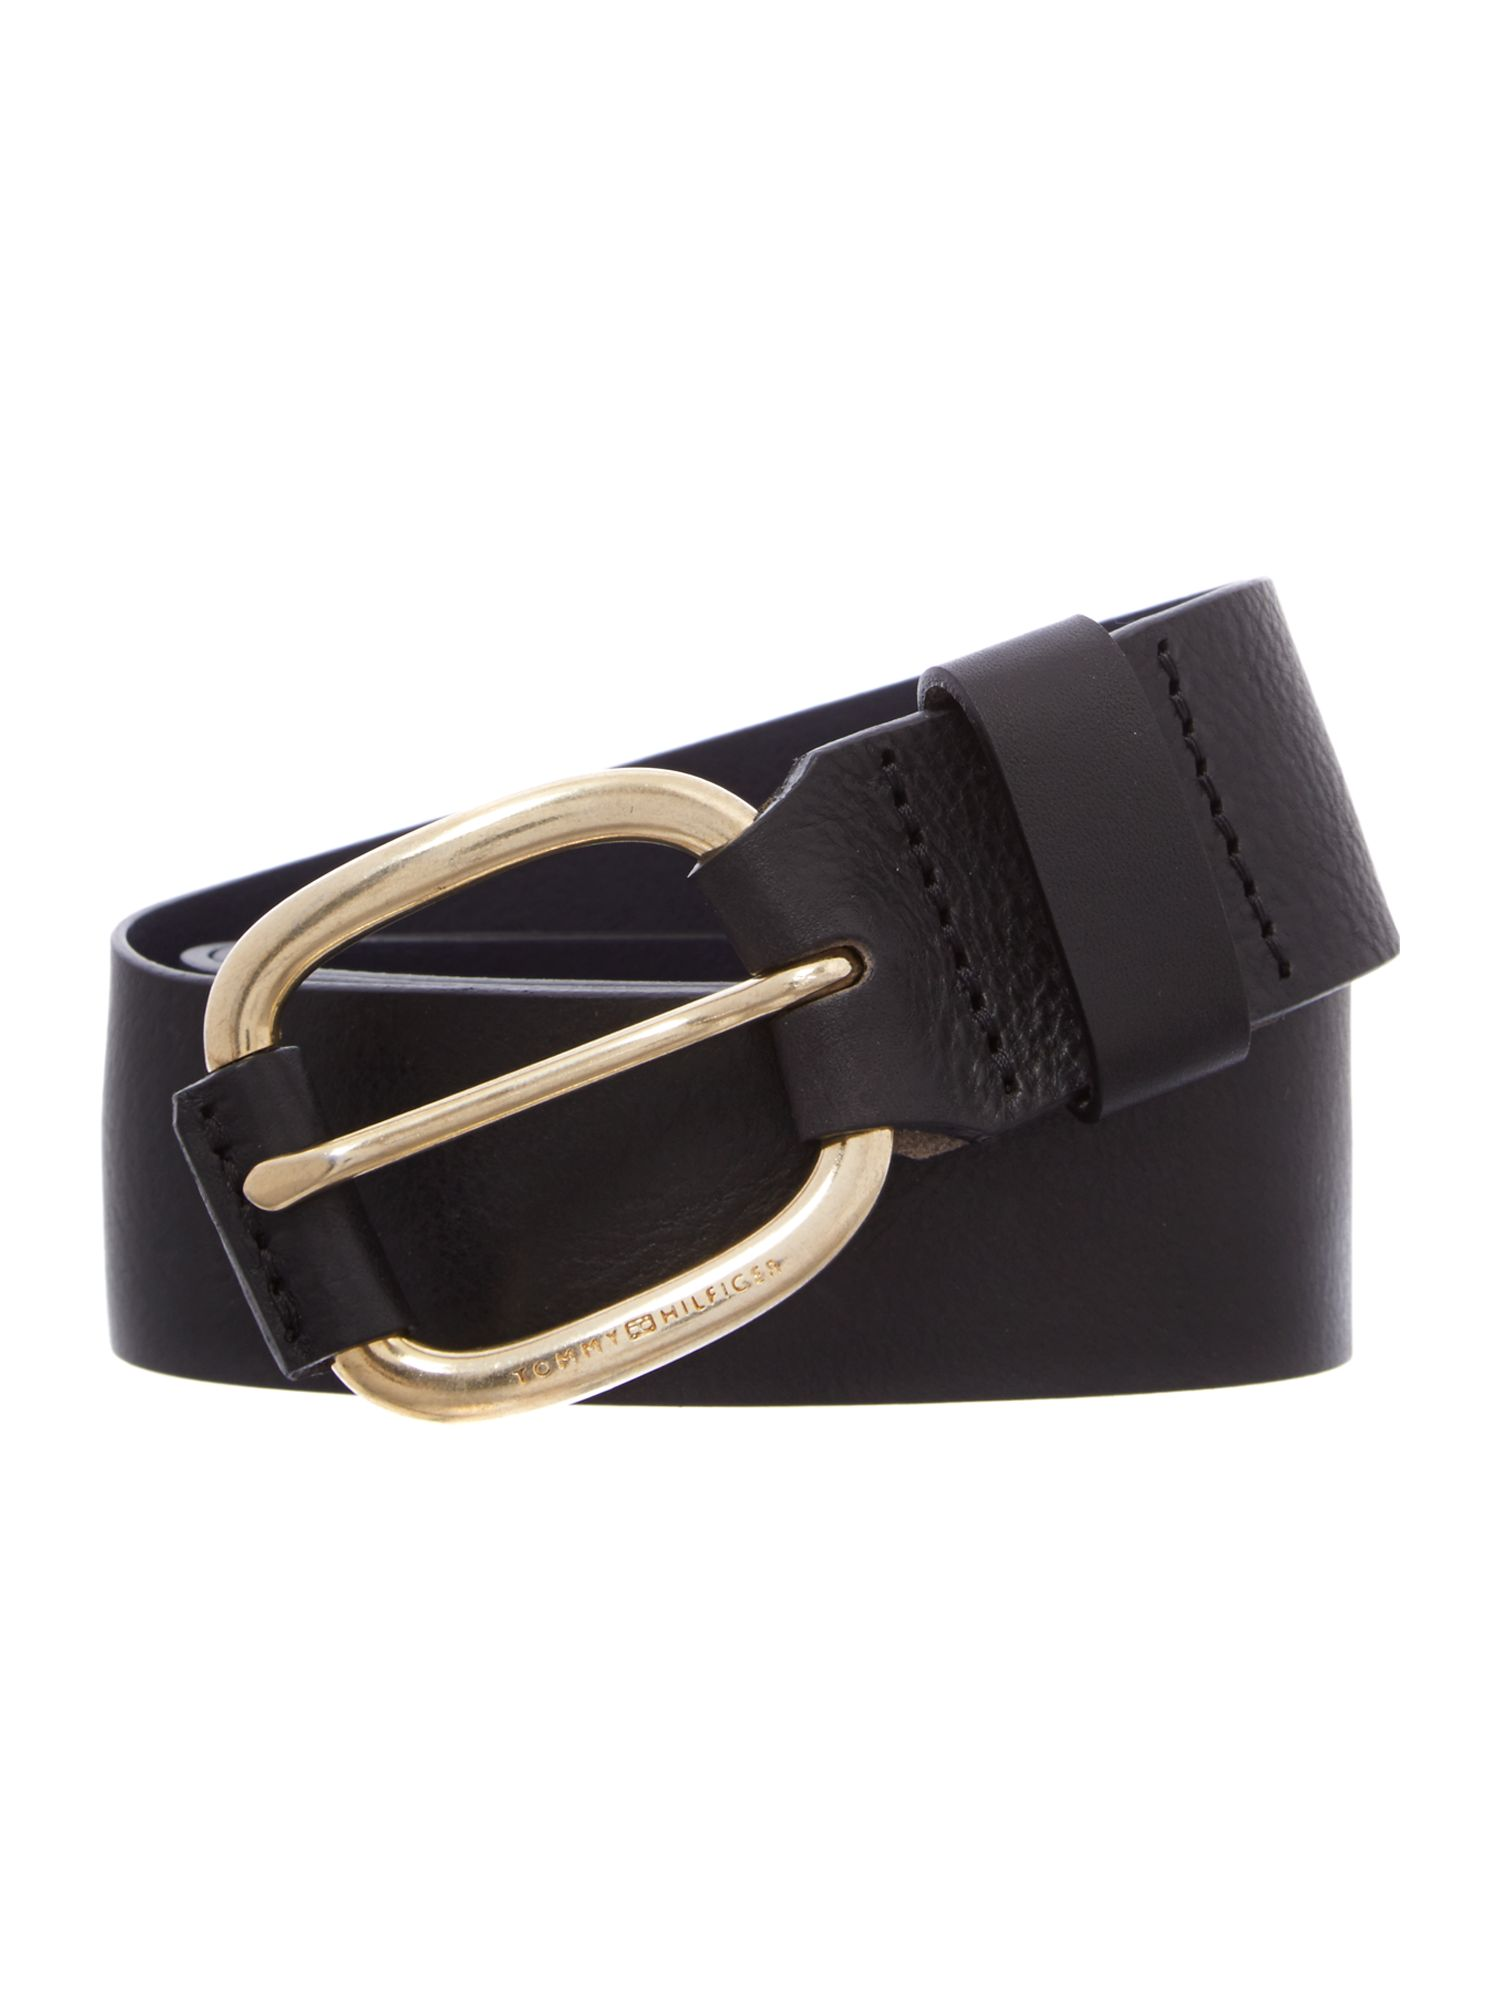 Whitney black jeans belt